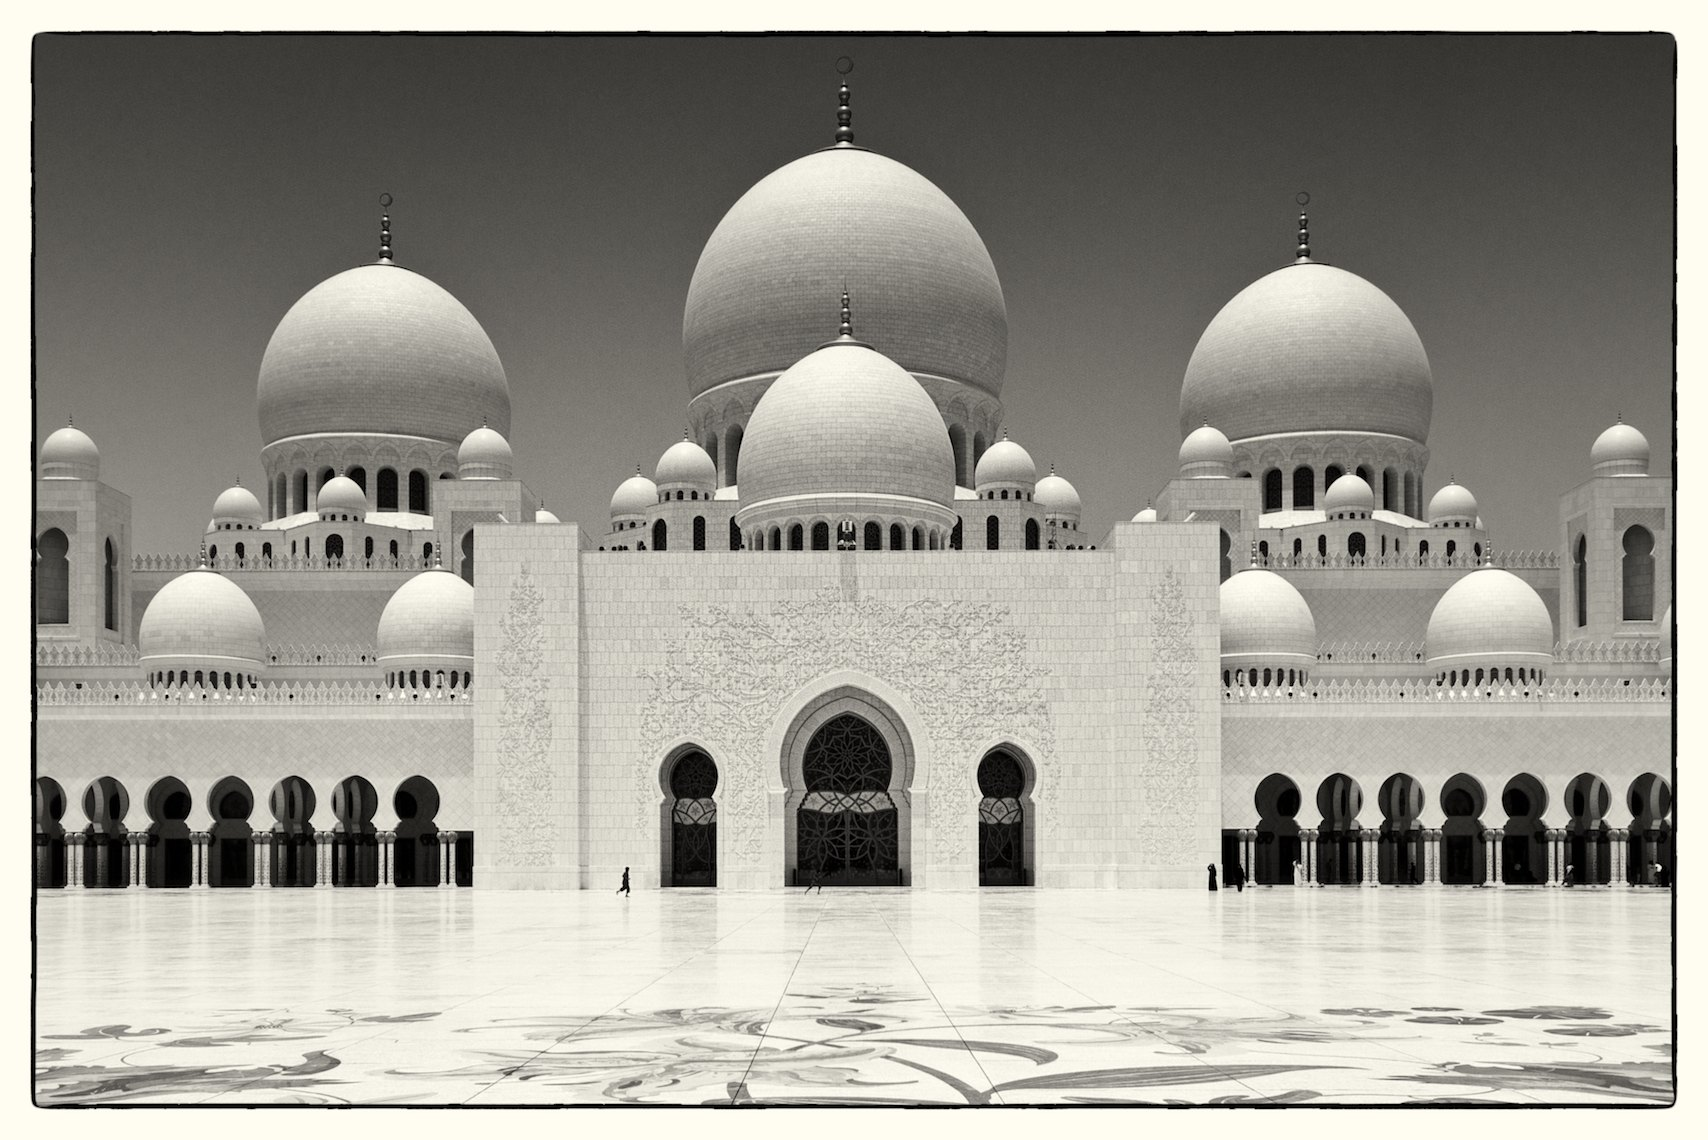 United Arab Emirates Abu Dhabi Sheikh Zayed Grand Mosque